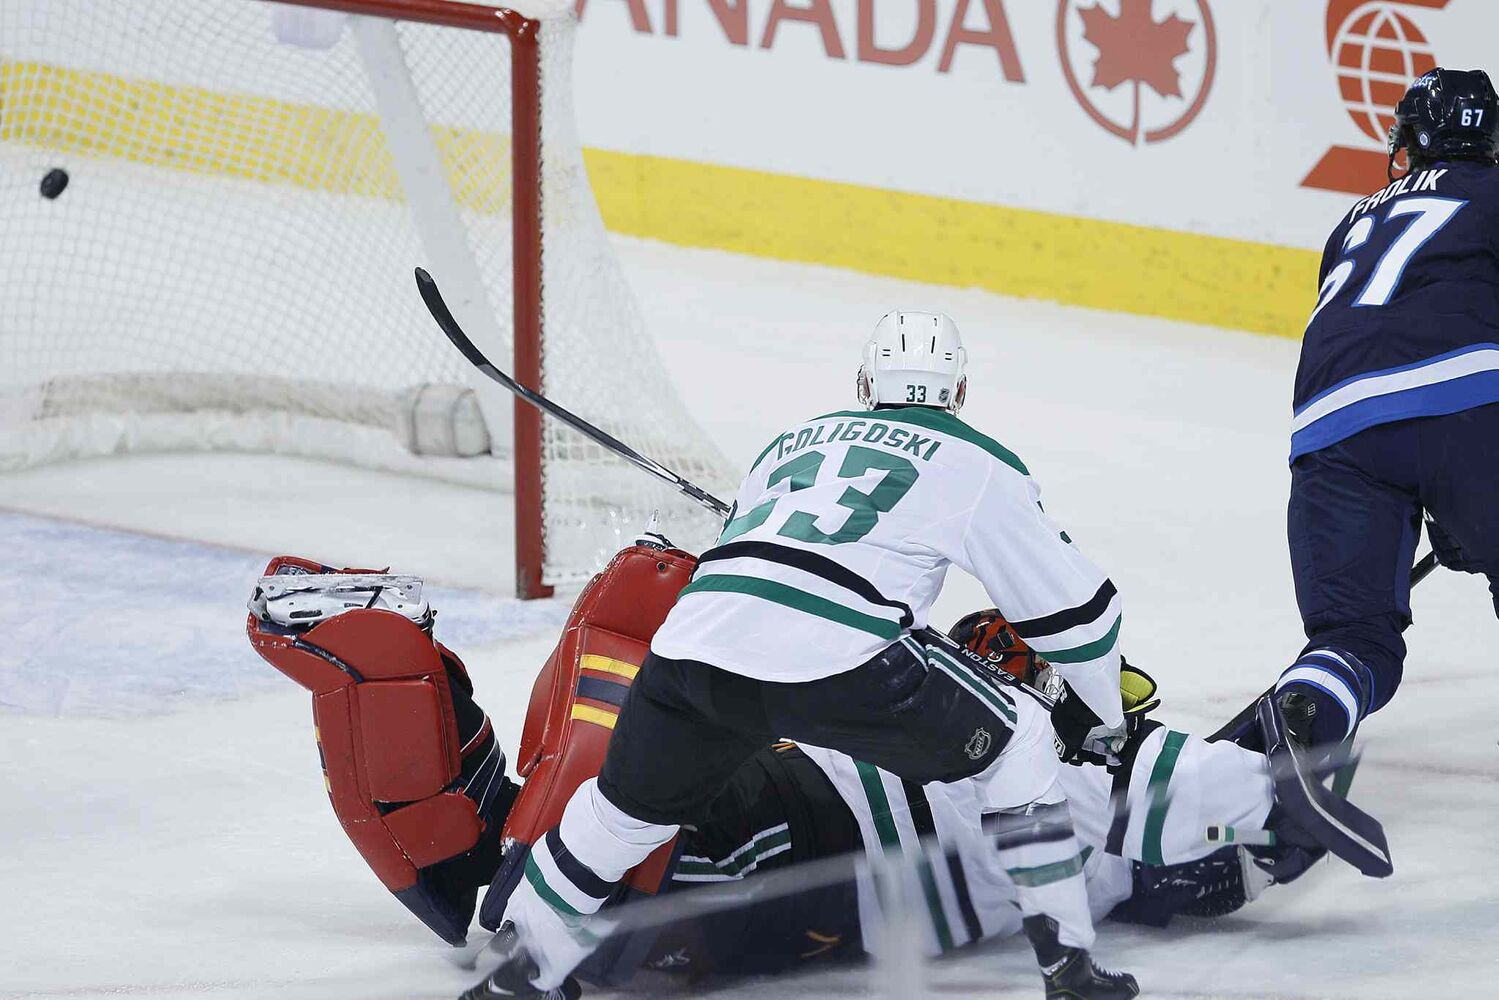 Stars goaltender Tim Thomas can't stop Jets forward Michael Frolik from scoring as the Stars' Alex Goligoski defends during the first period. (JOHN WOODS / WINNIPEG FREE PRESS)